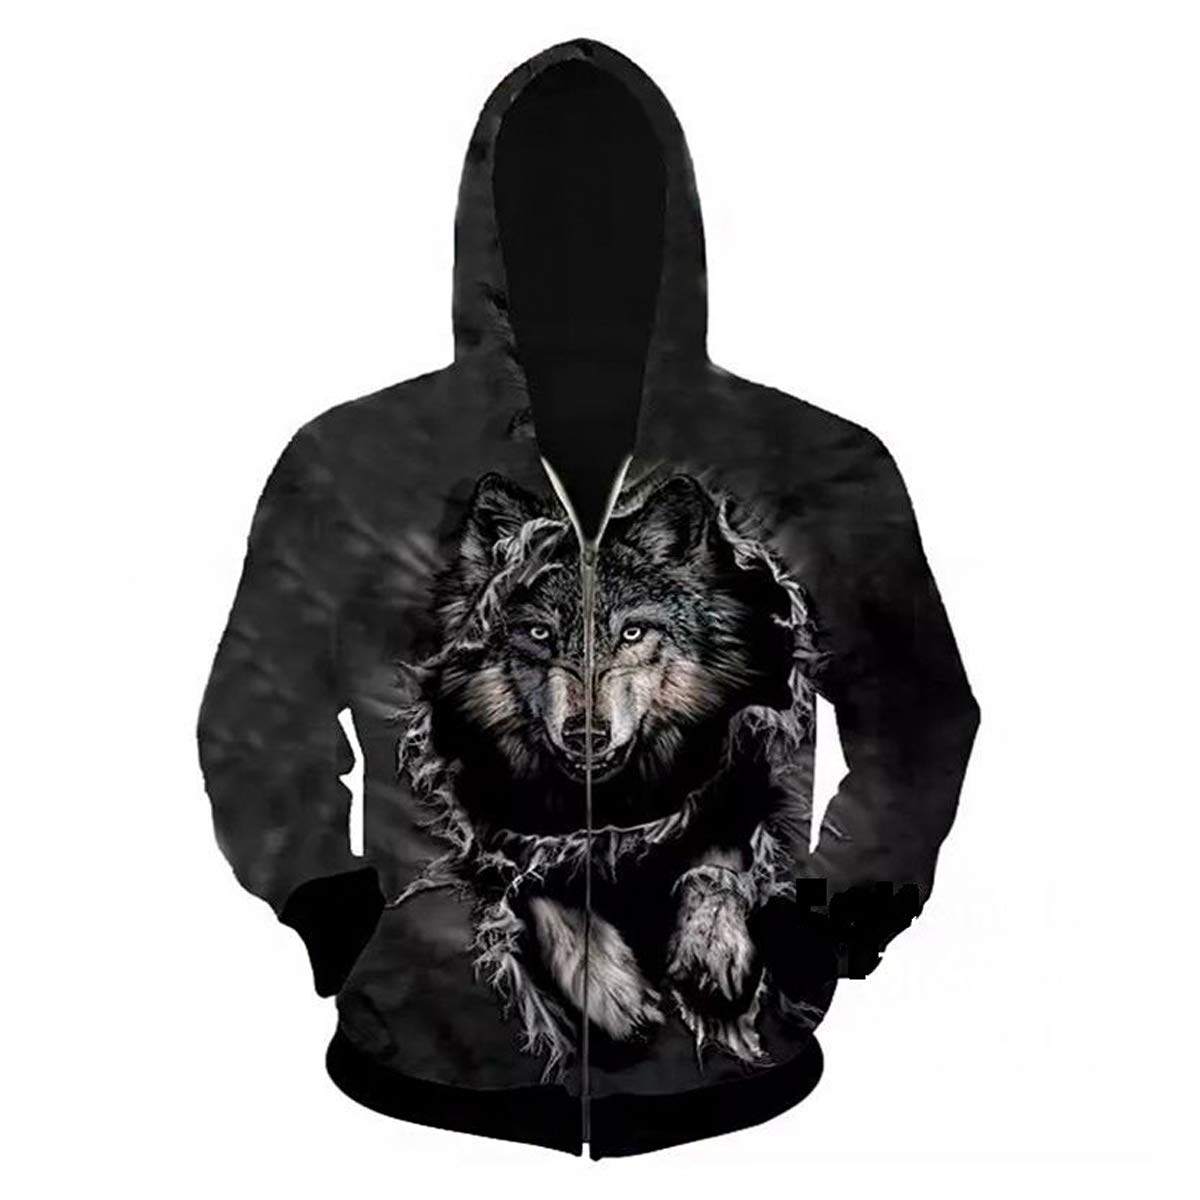 Fmeijia Men Hoodies 3D Wolf PrintZipper Jacket Sweatshirt Loose Sport Pullover Tops